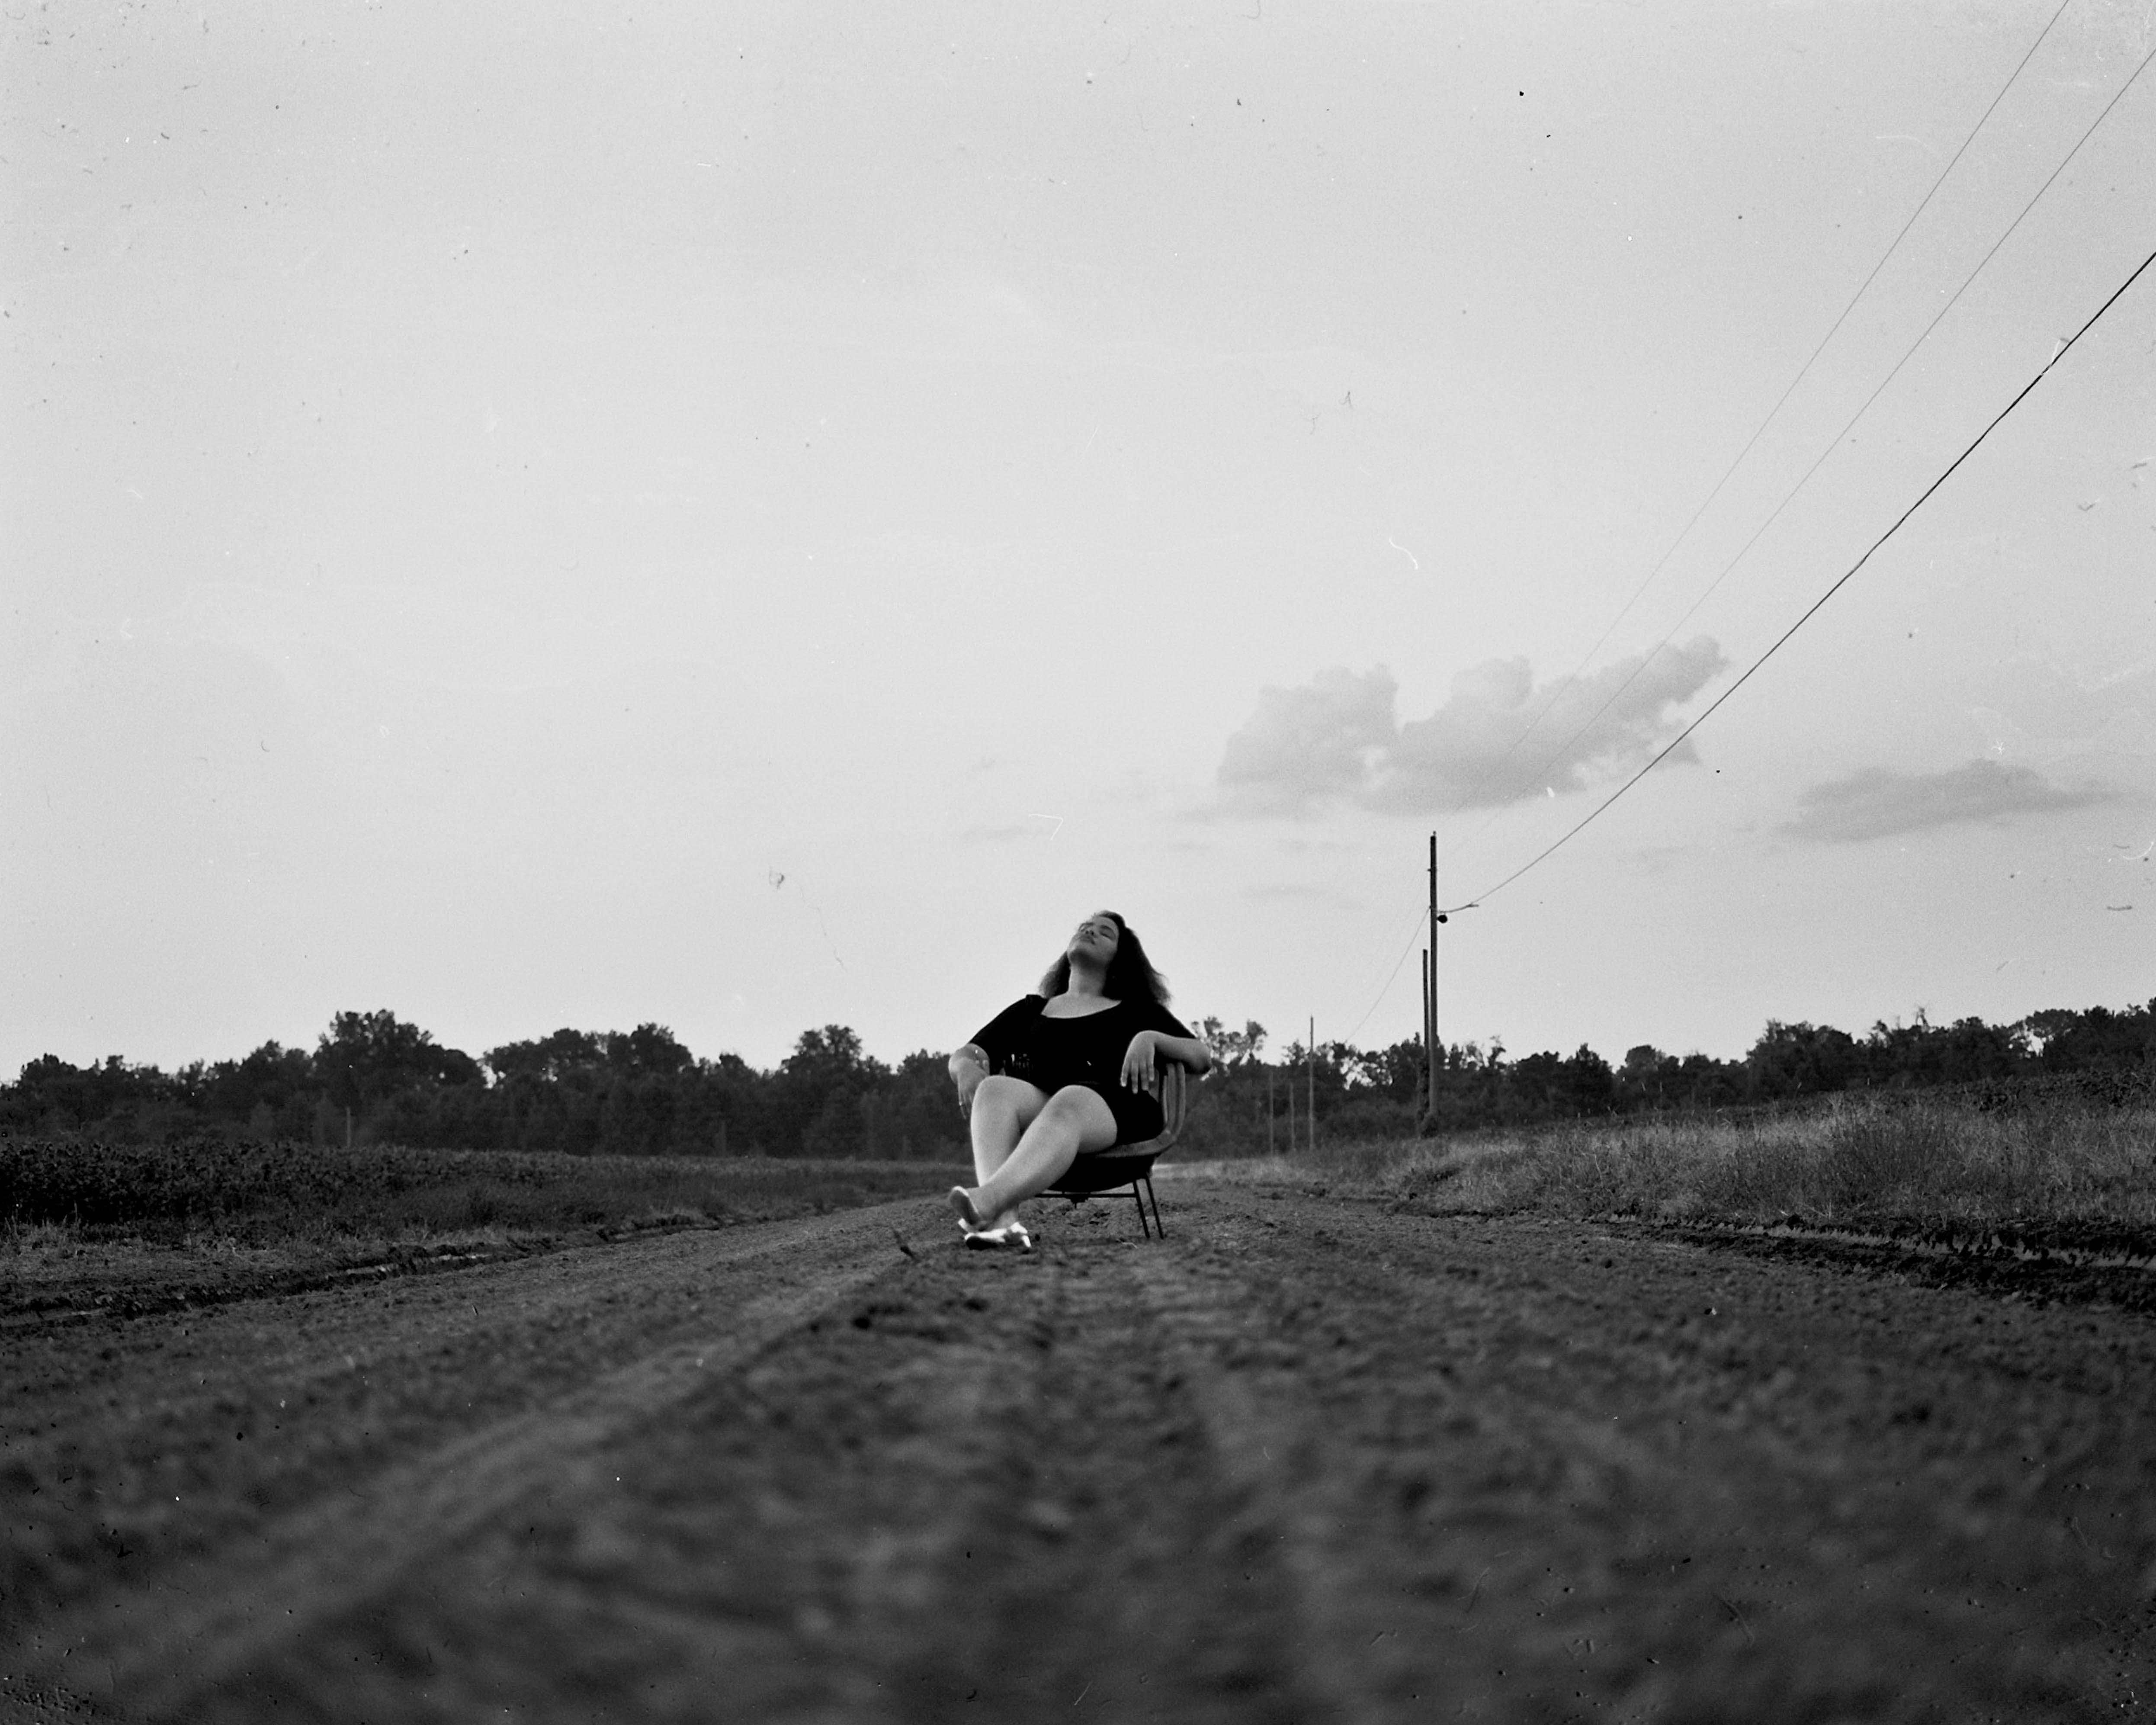 Grayscale Photography of Woman Sits on Chair on Pathway